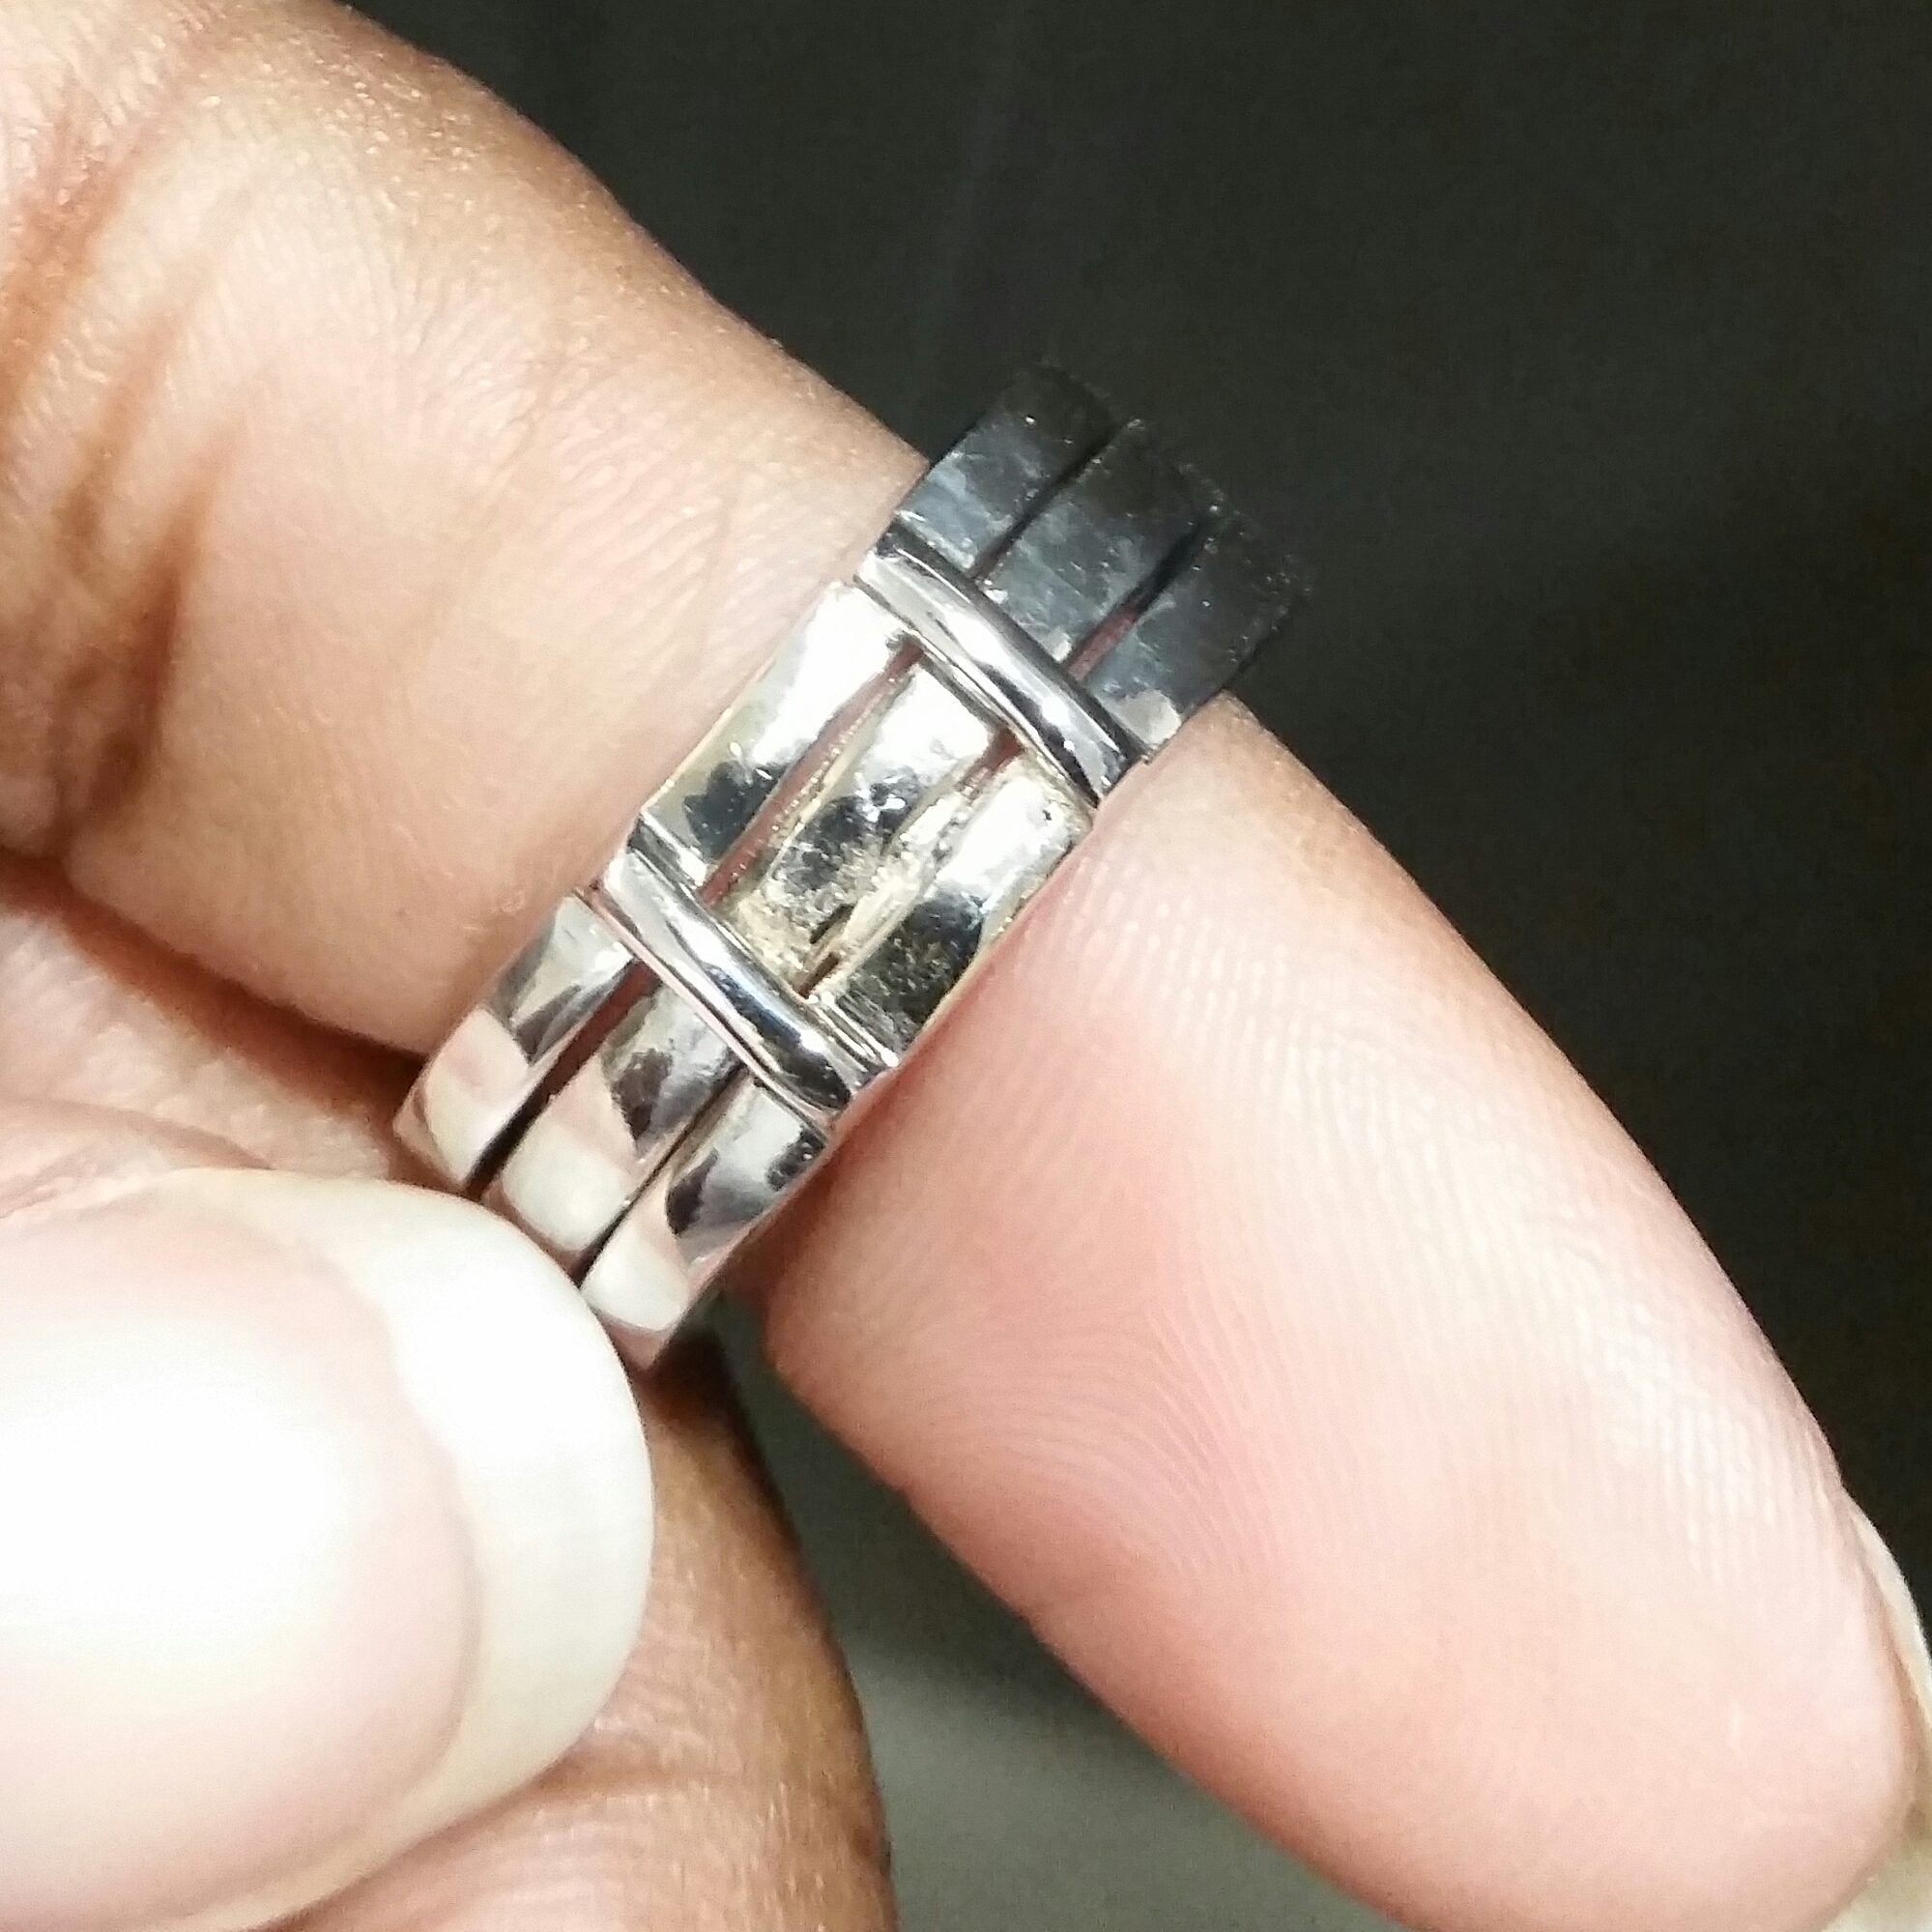 zales zales diamond wedding rings I purchased a bridal ring set for my fiance and wedding band for myself on 8 2 from the Zales Greenbrier Mall location in Chesapeake VA